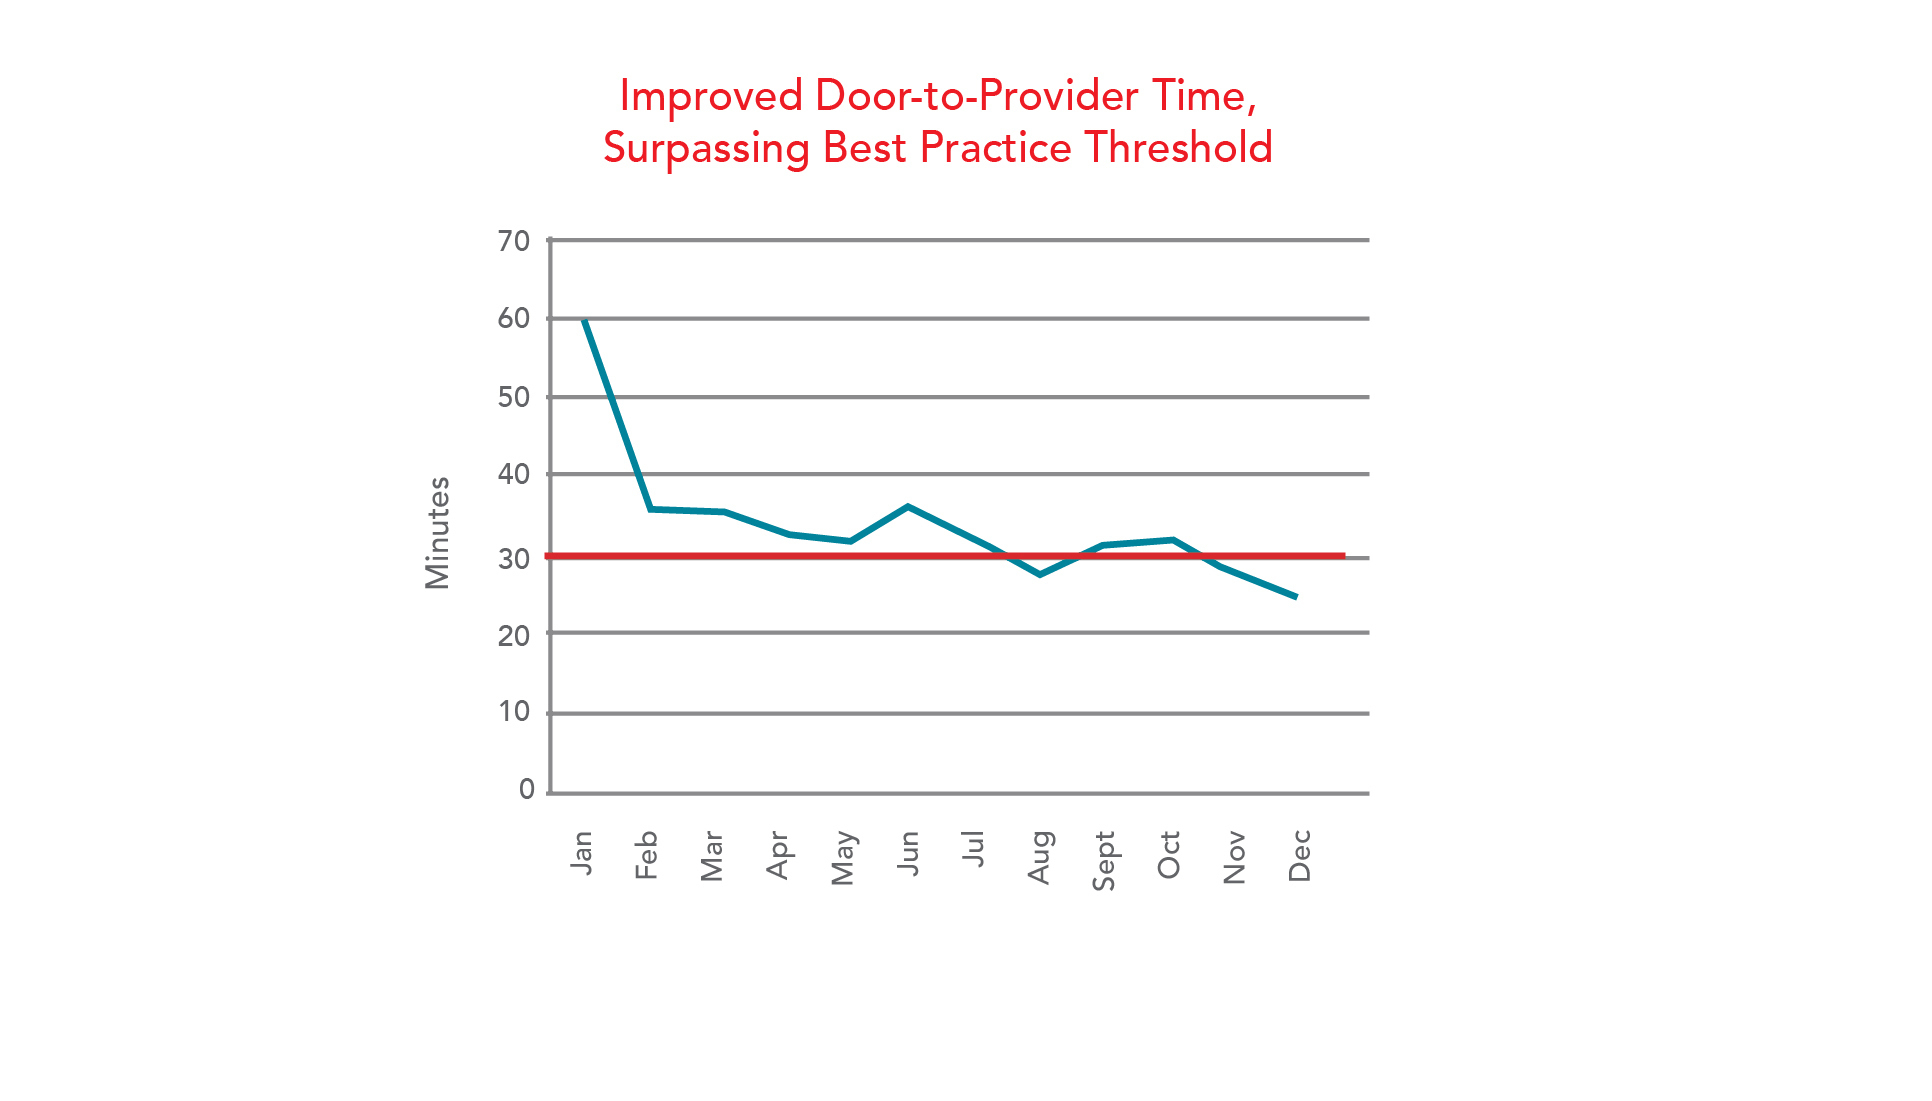 Improved Door-to-Provider Time, Surpassing Best Practice Threshold